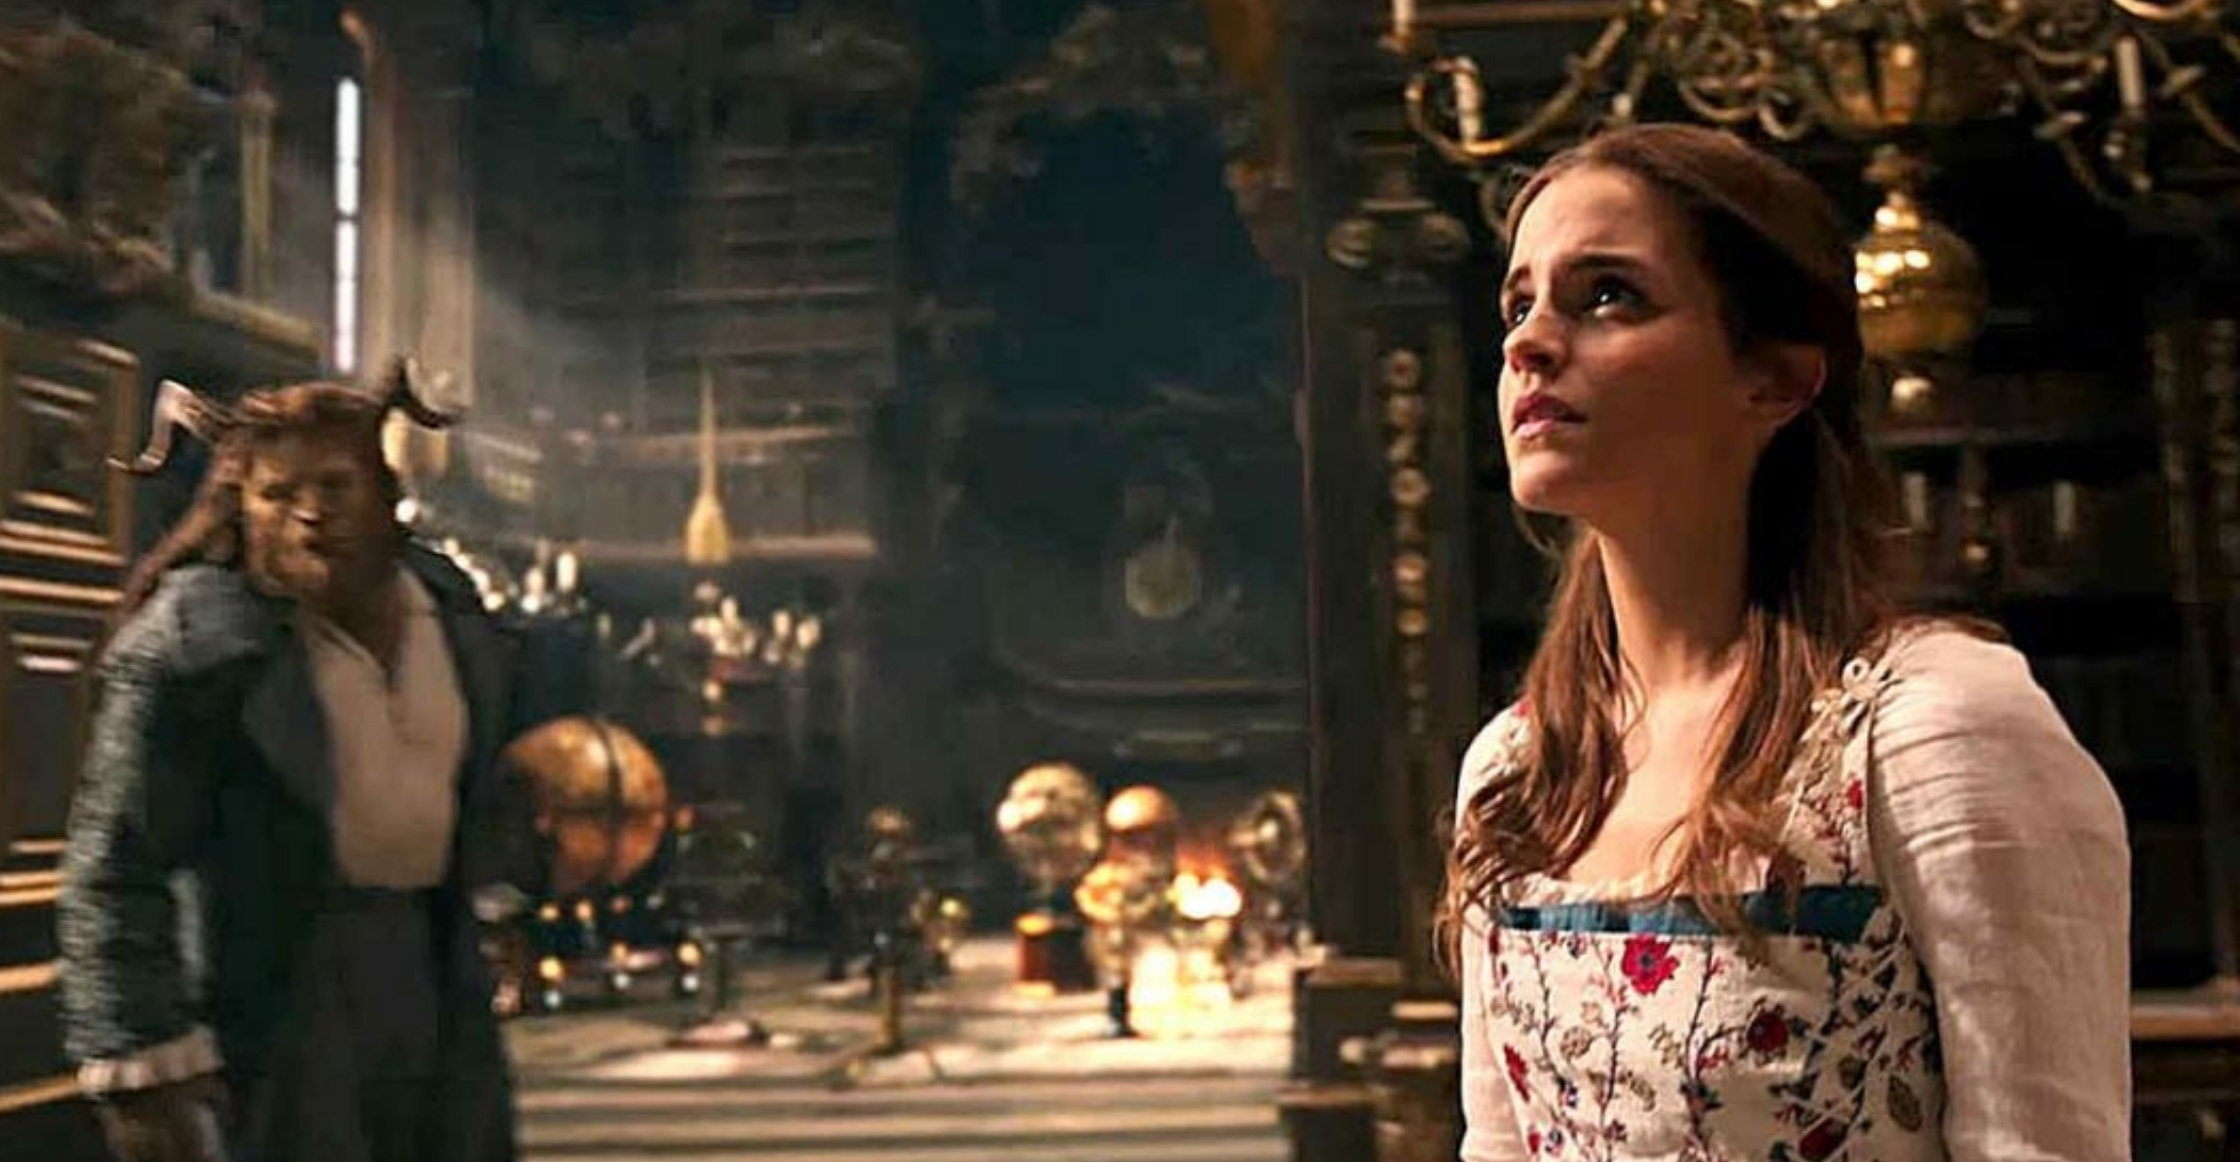 It's official now: There will be a 'Beauty and the Beast' prequel series on Disney +!